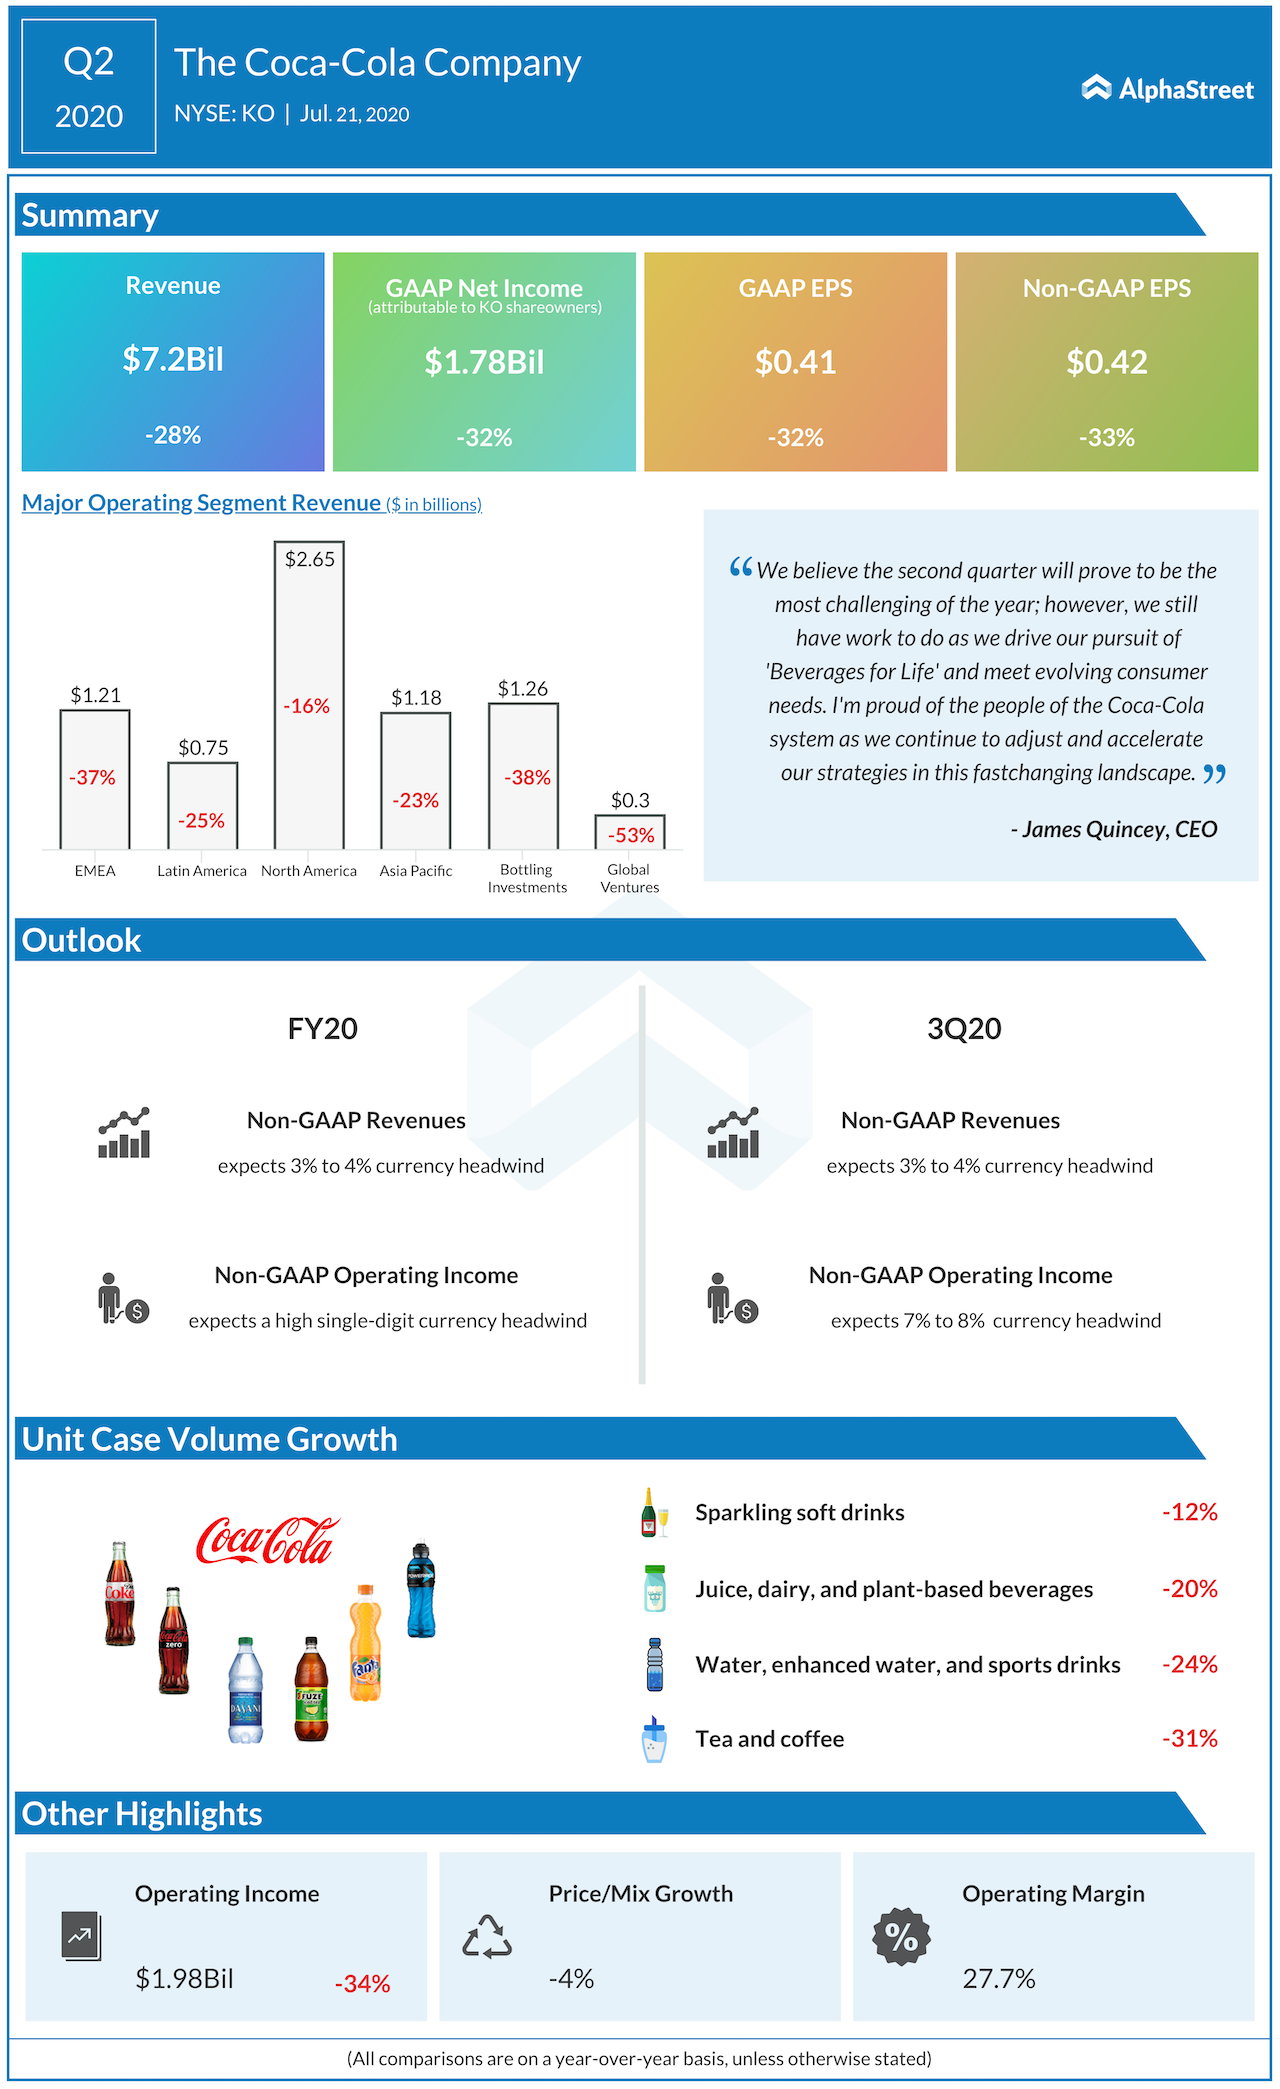 The-Coca-Cola-company-Q2-2020-earnings